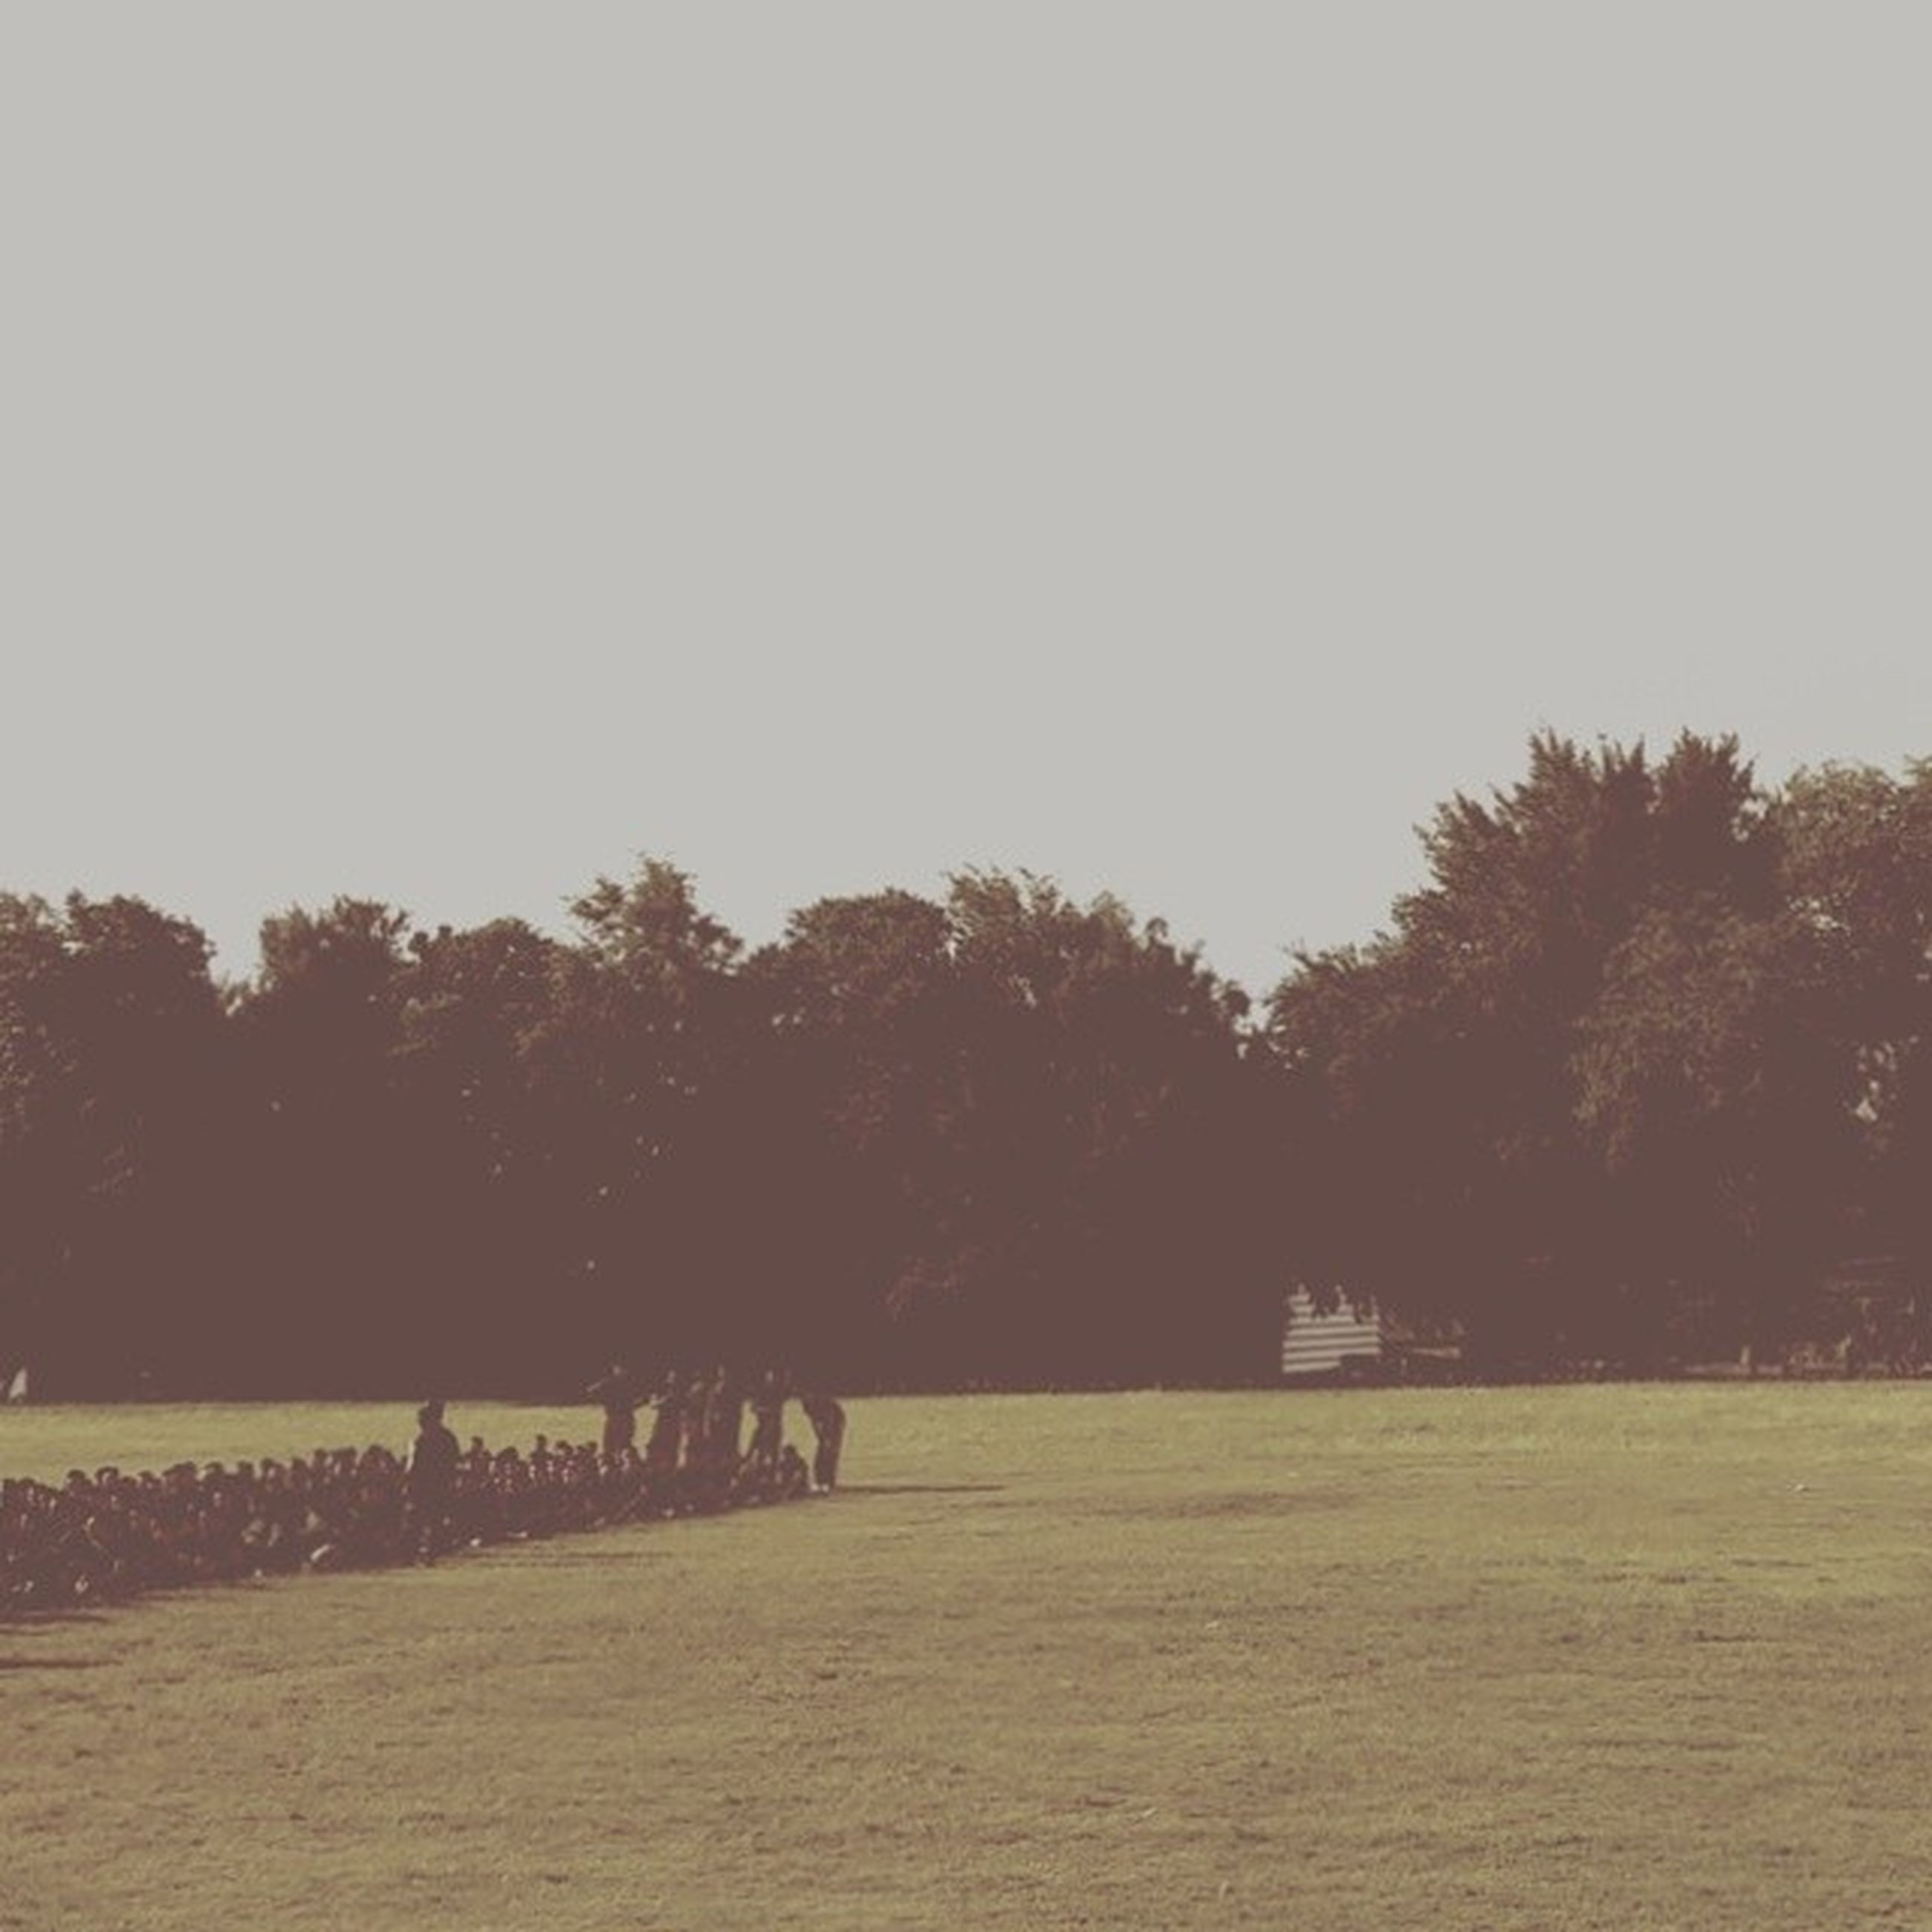 tree, clear sky, copy space, tranquility, tranquil scene, scenics, nature, landscape, field, beauty in nature, outdoors, growth, water, idyllic, sky, non-urban scene, silhouette, incidental people, grass